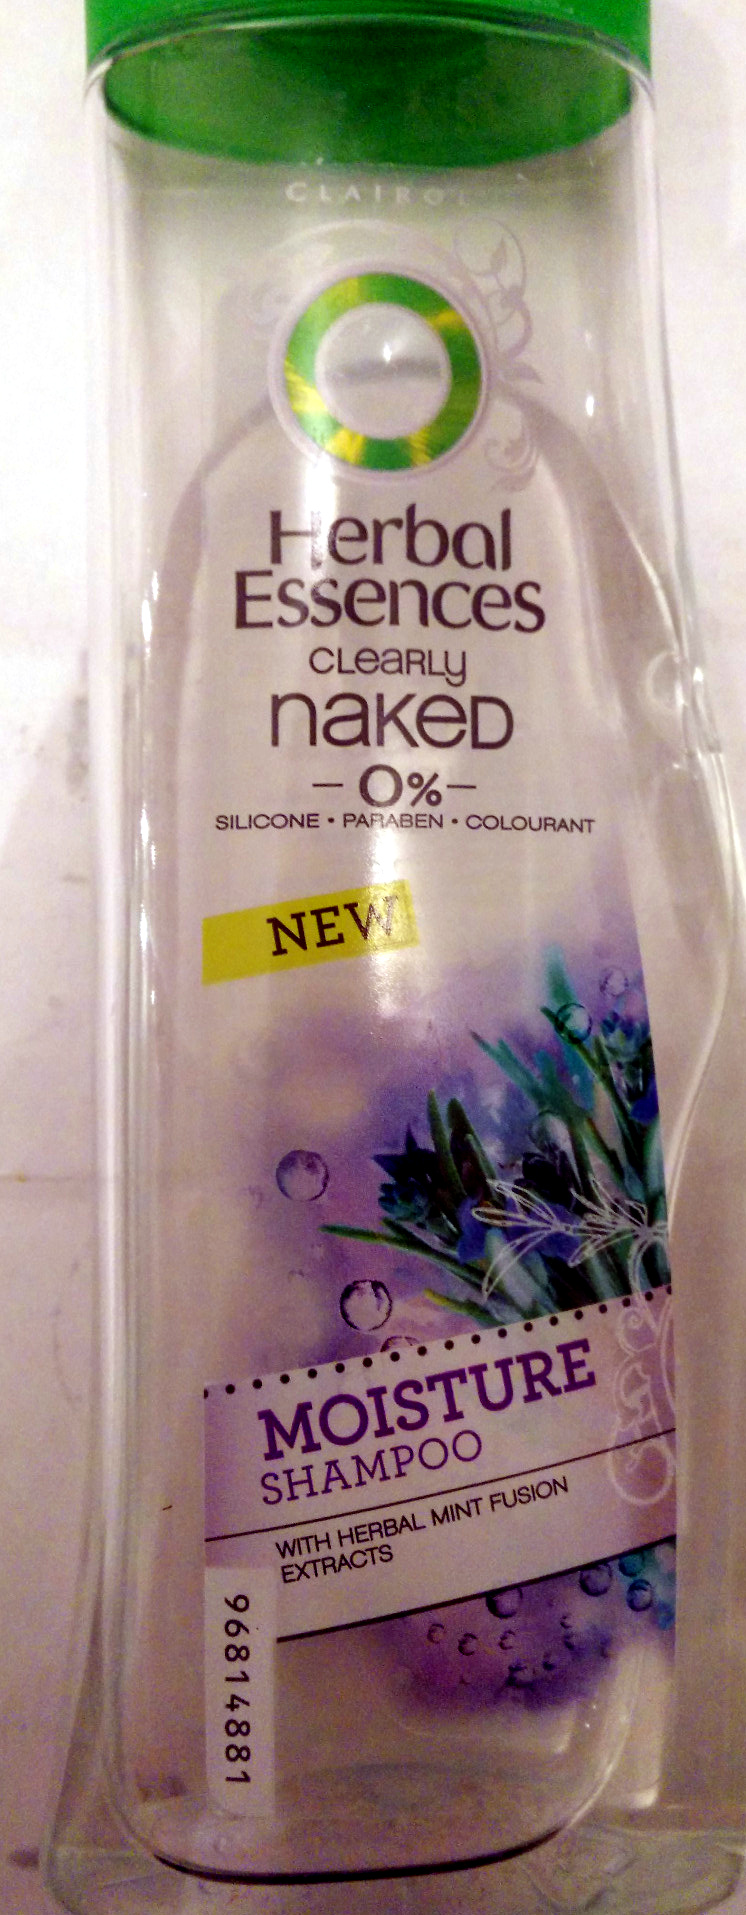 Clearly Naked Moisture Shampoo - Product - en